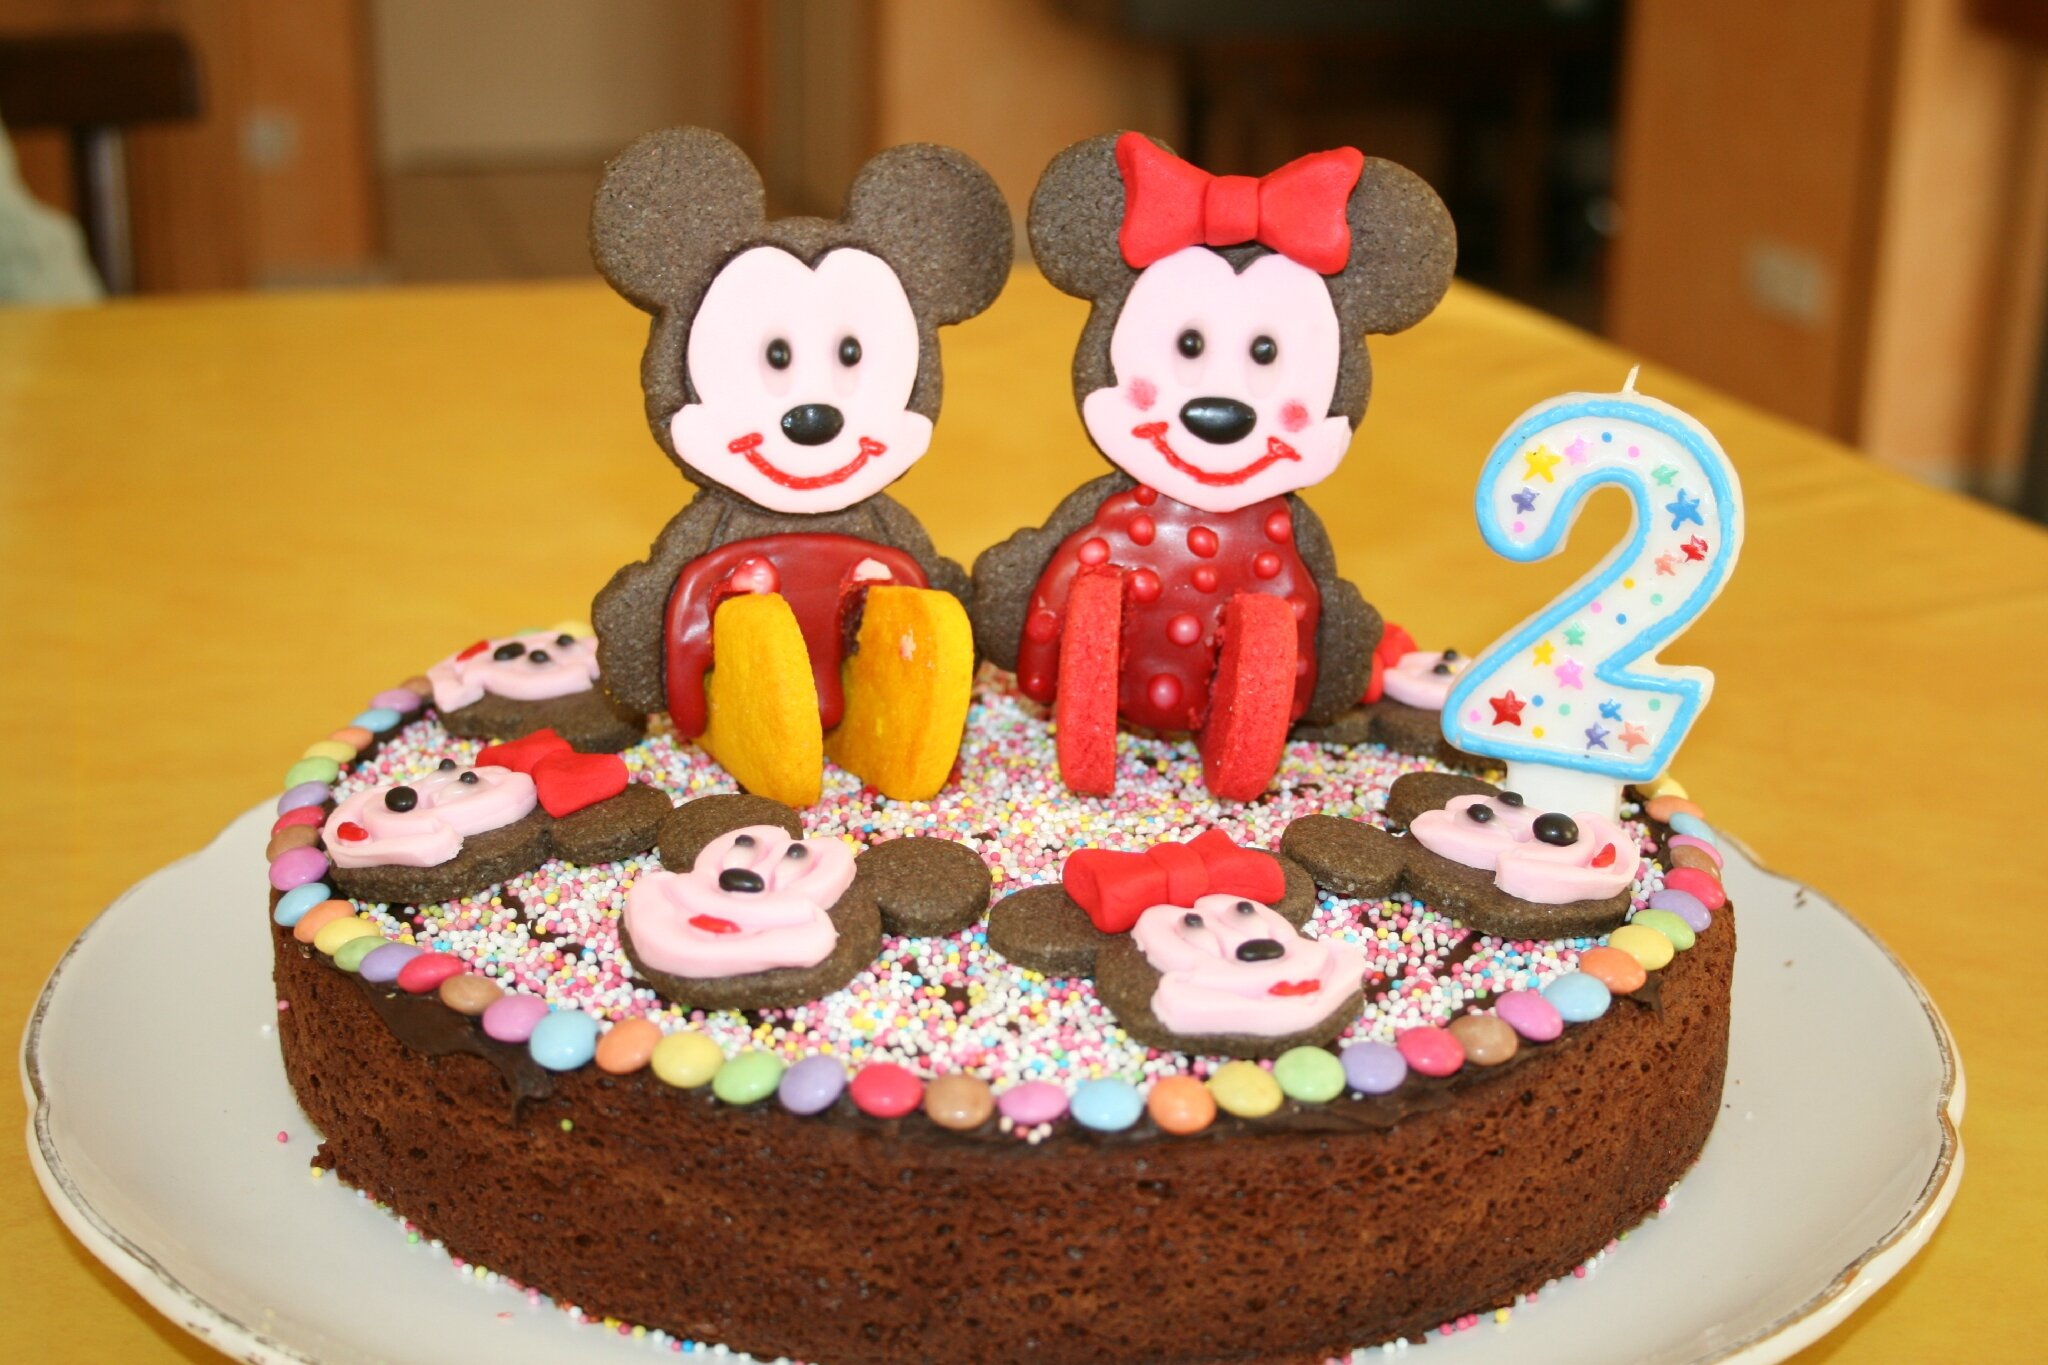 Micke Maouse Cake